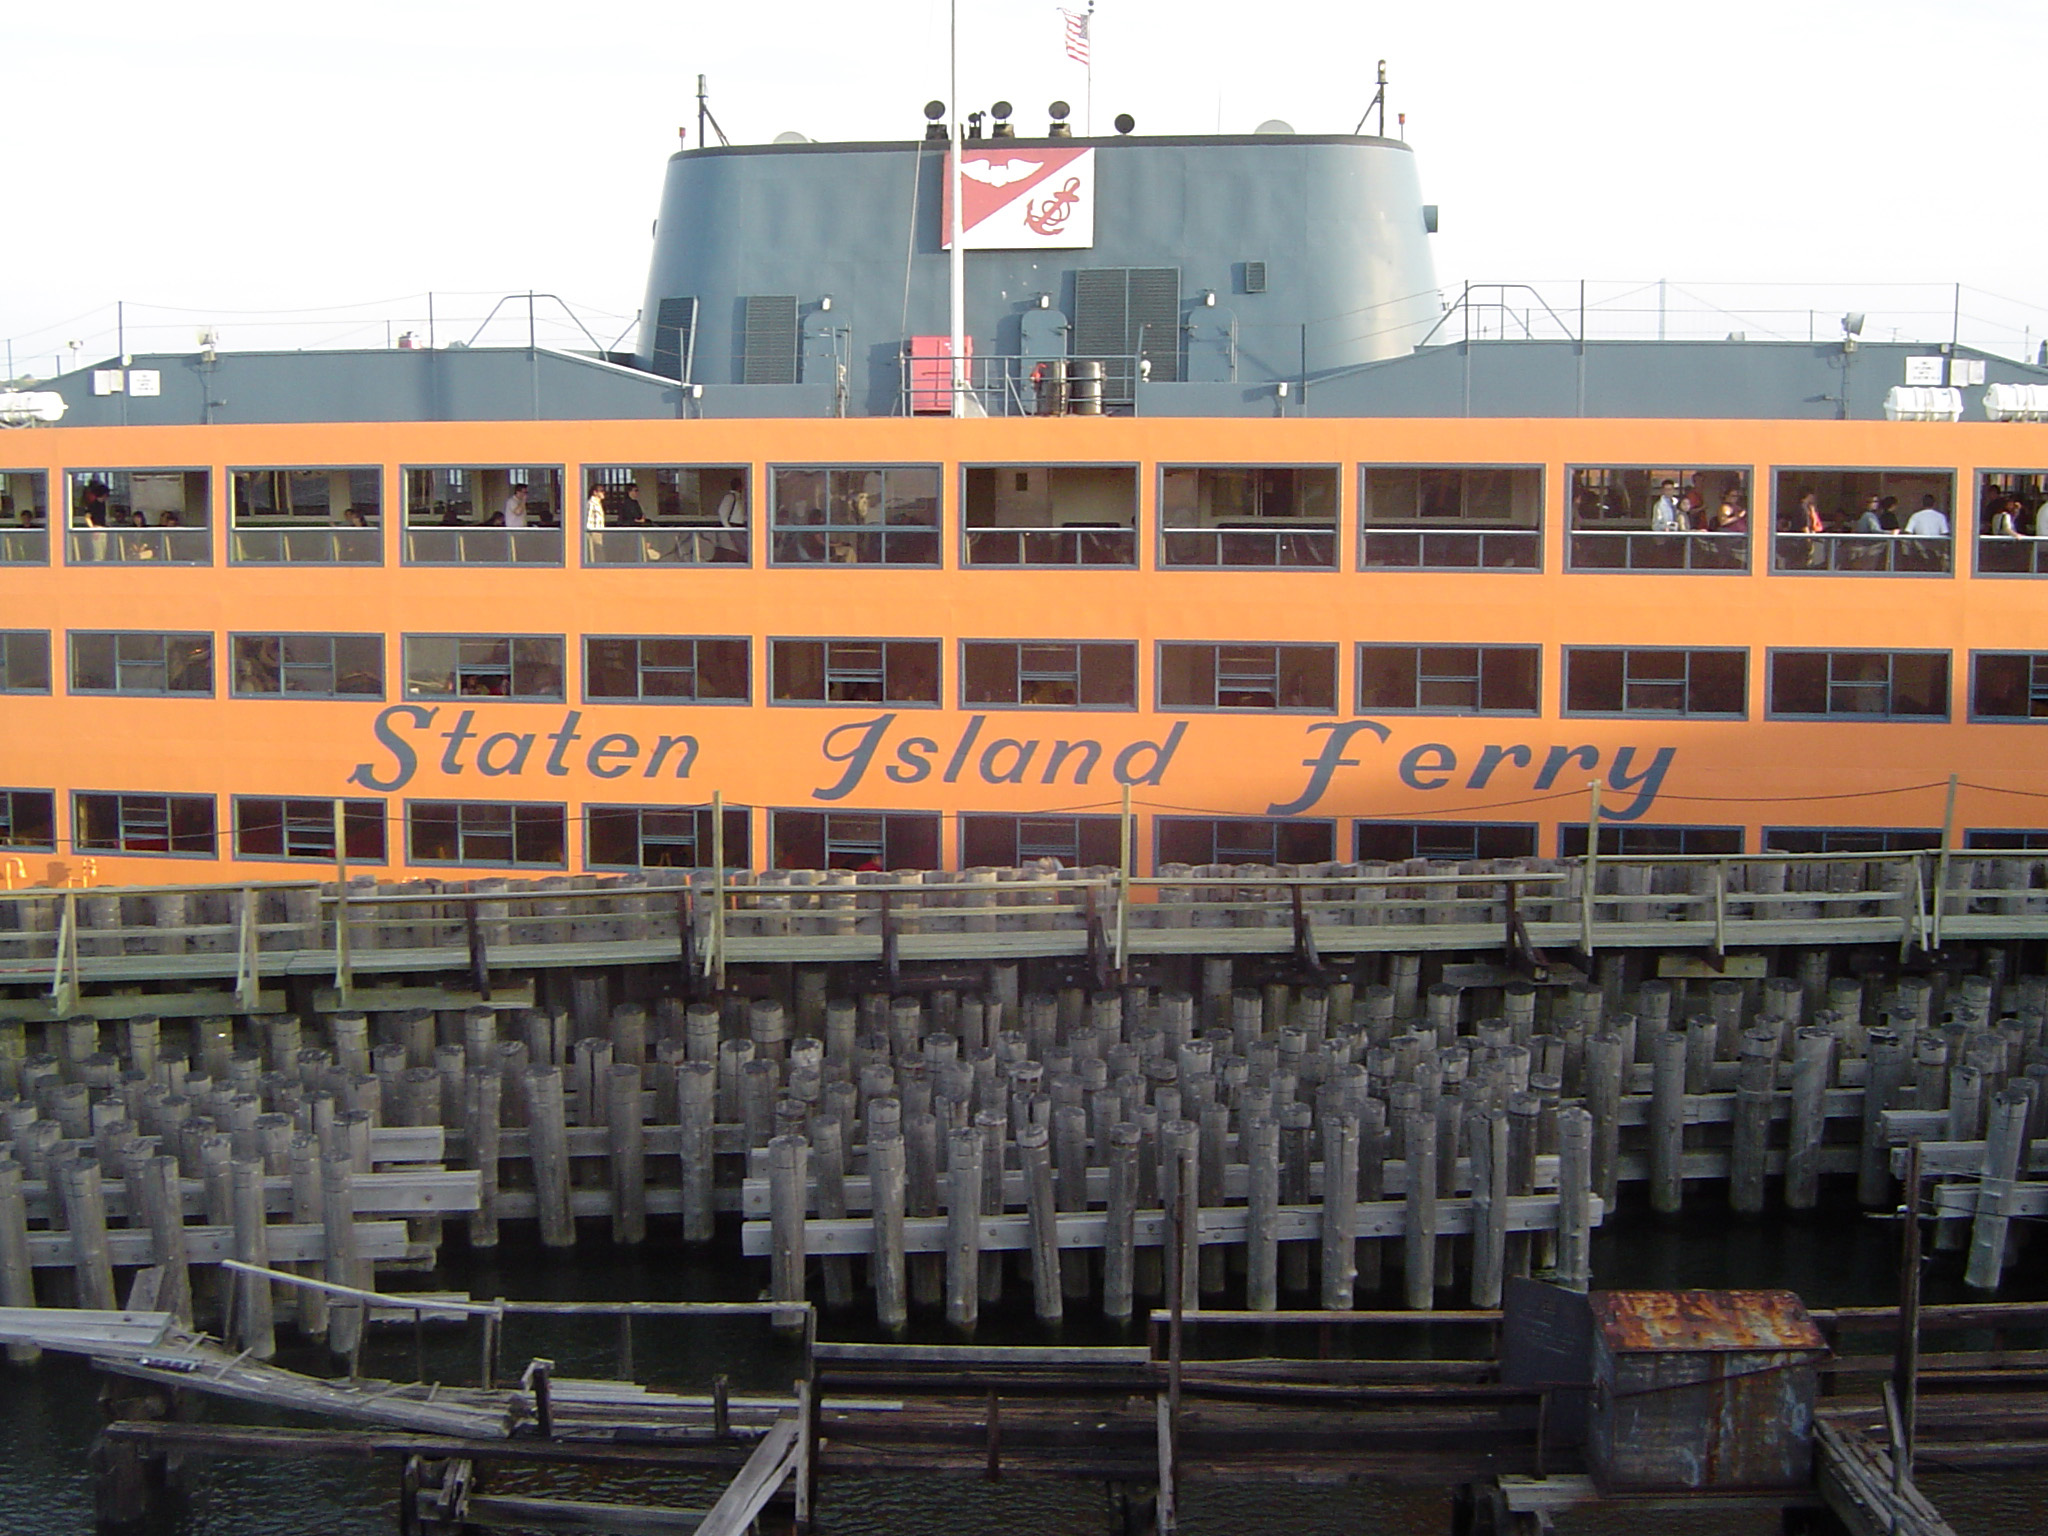 View of the decks of the Staten Usland ferry which carries passengers between Staten island and Manhattan, New York